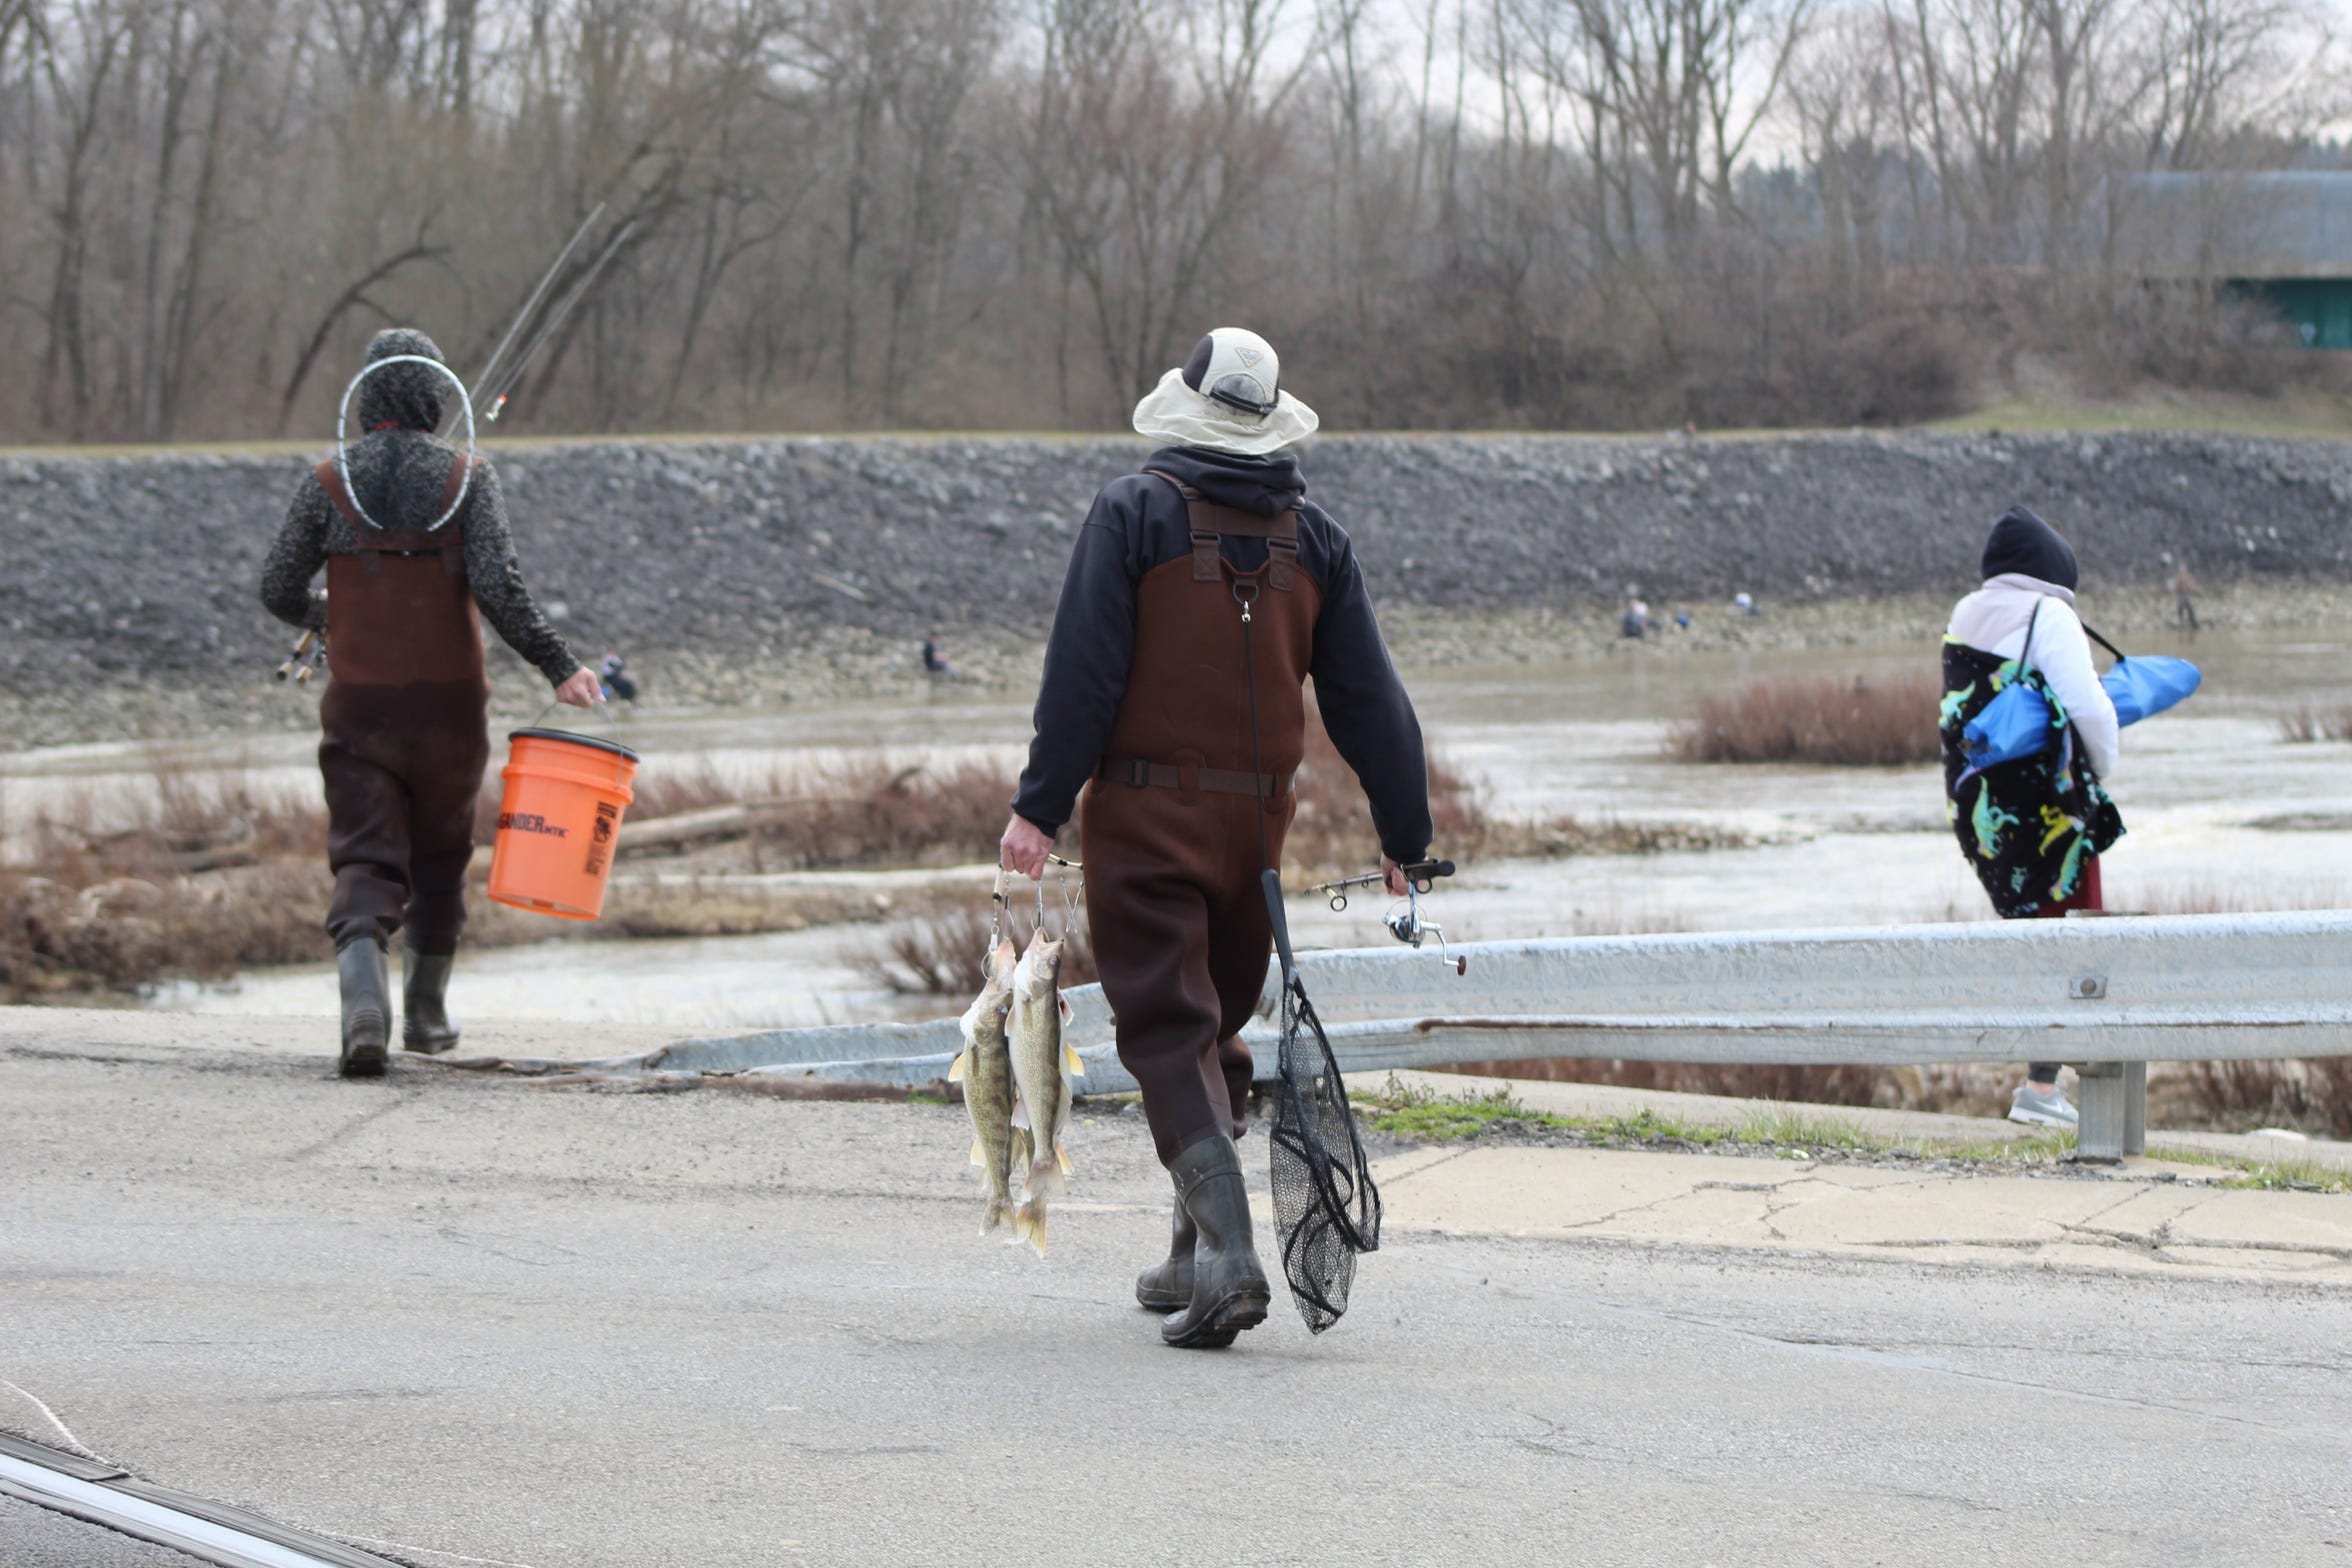 A fishermen carried some of the walleye he caught from the Sandusky River Thursday in Fremont. Dozens of fishermen lined the river's shoreline near the city's downtown area in hopes of catching fish during the river's annual spring walleye run.